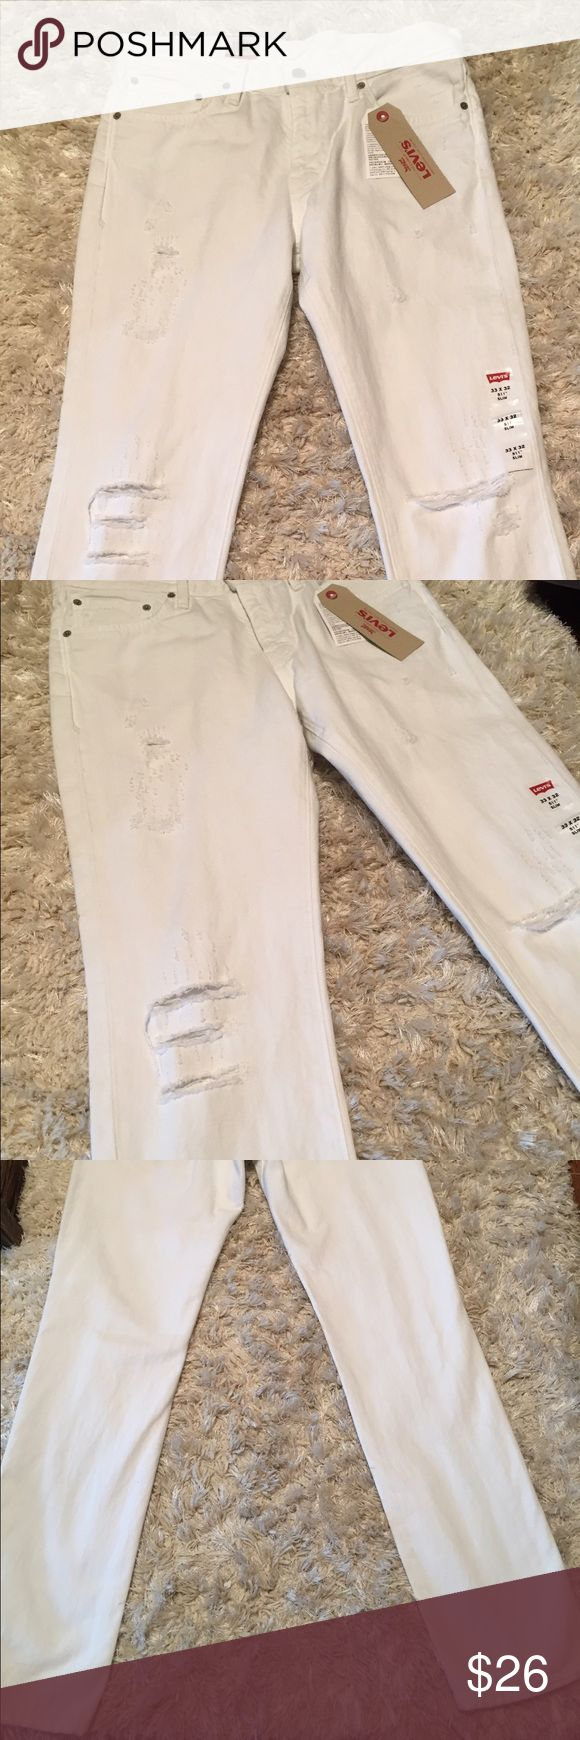 Levi's 511 White Destroyed Slim Jeans NWT Men's Levi's 511 Distressed White Slim Jeans. New with tags from smoke free home. Sits below waist. Slim from hip to ankle. Great jeans for Spring/Summer. On trend.33 x 32. levis Jeans Slim